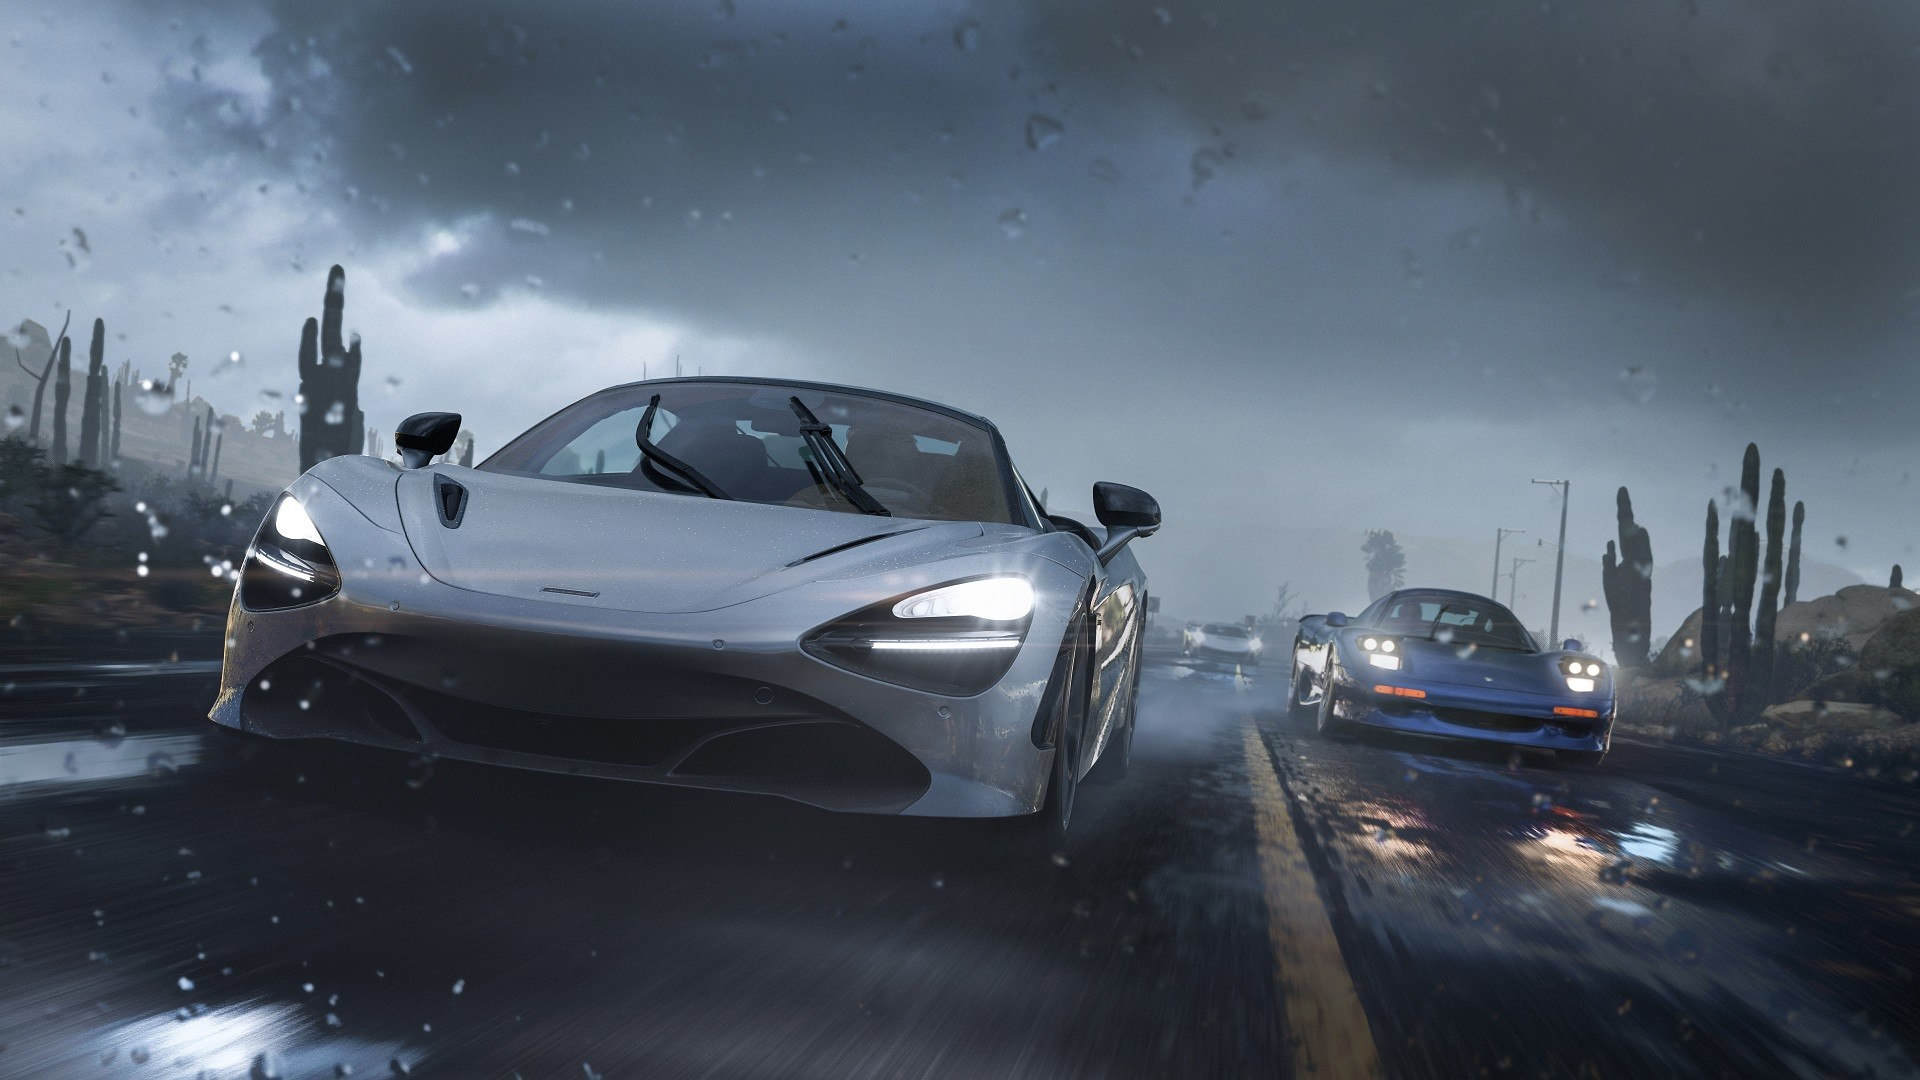 Forza Horizon 5 launches on Steam, too